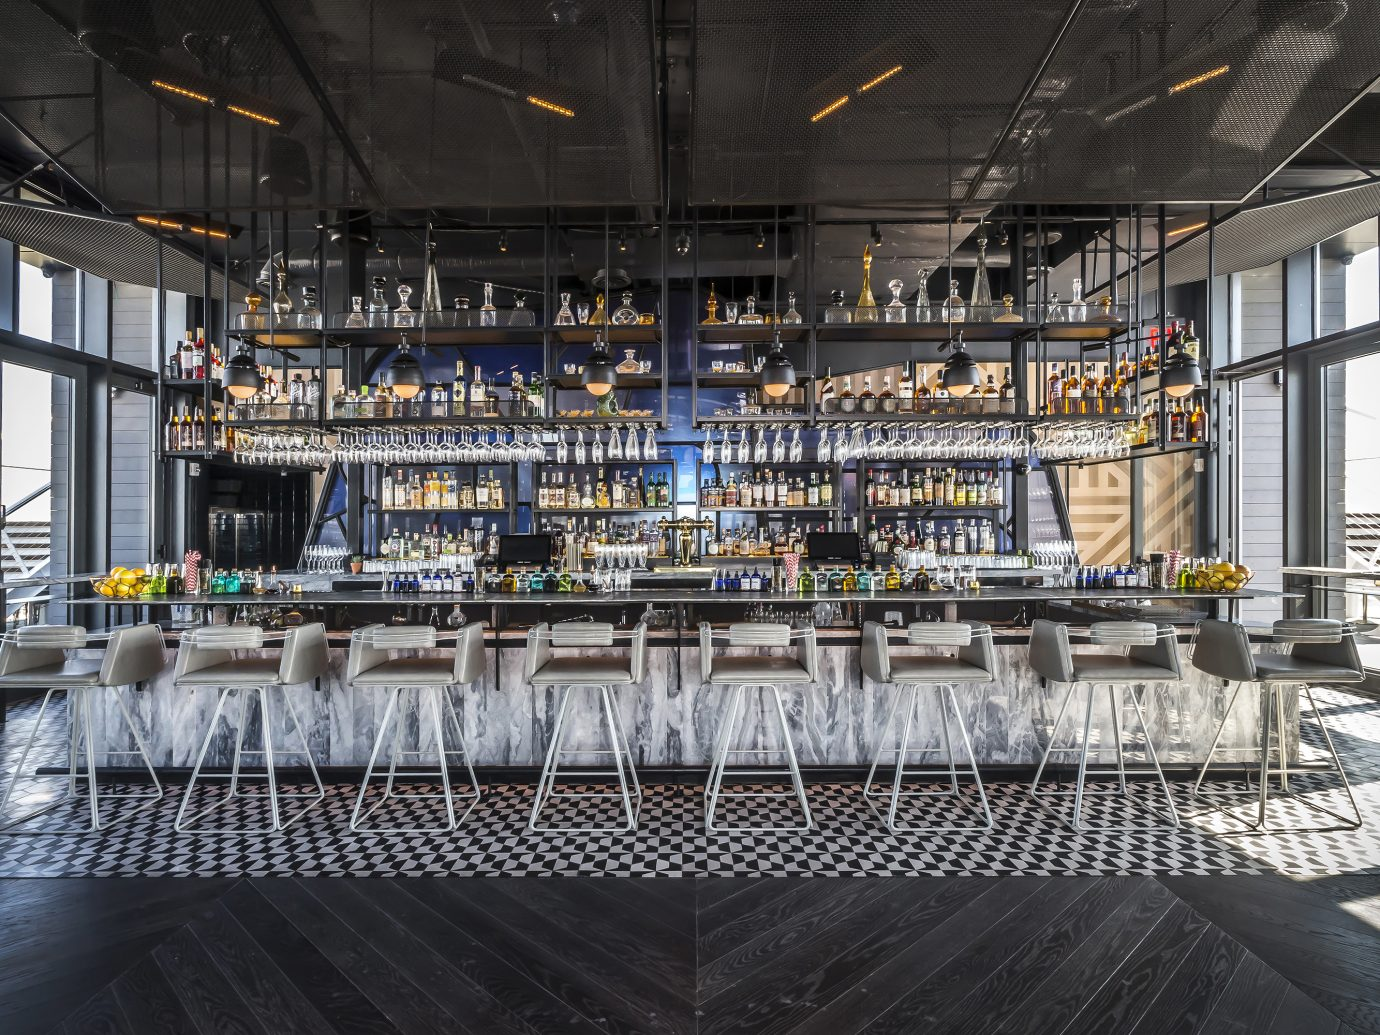 bar area with high stools